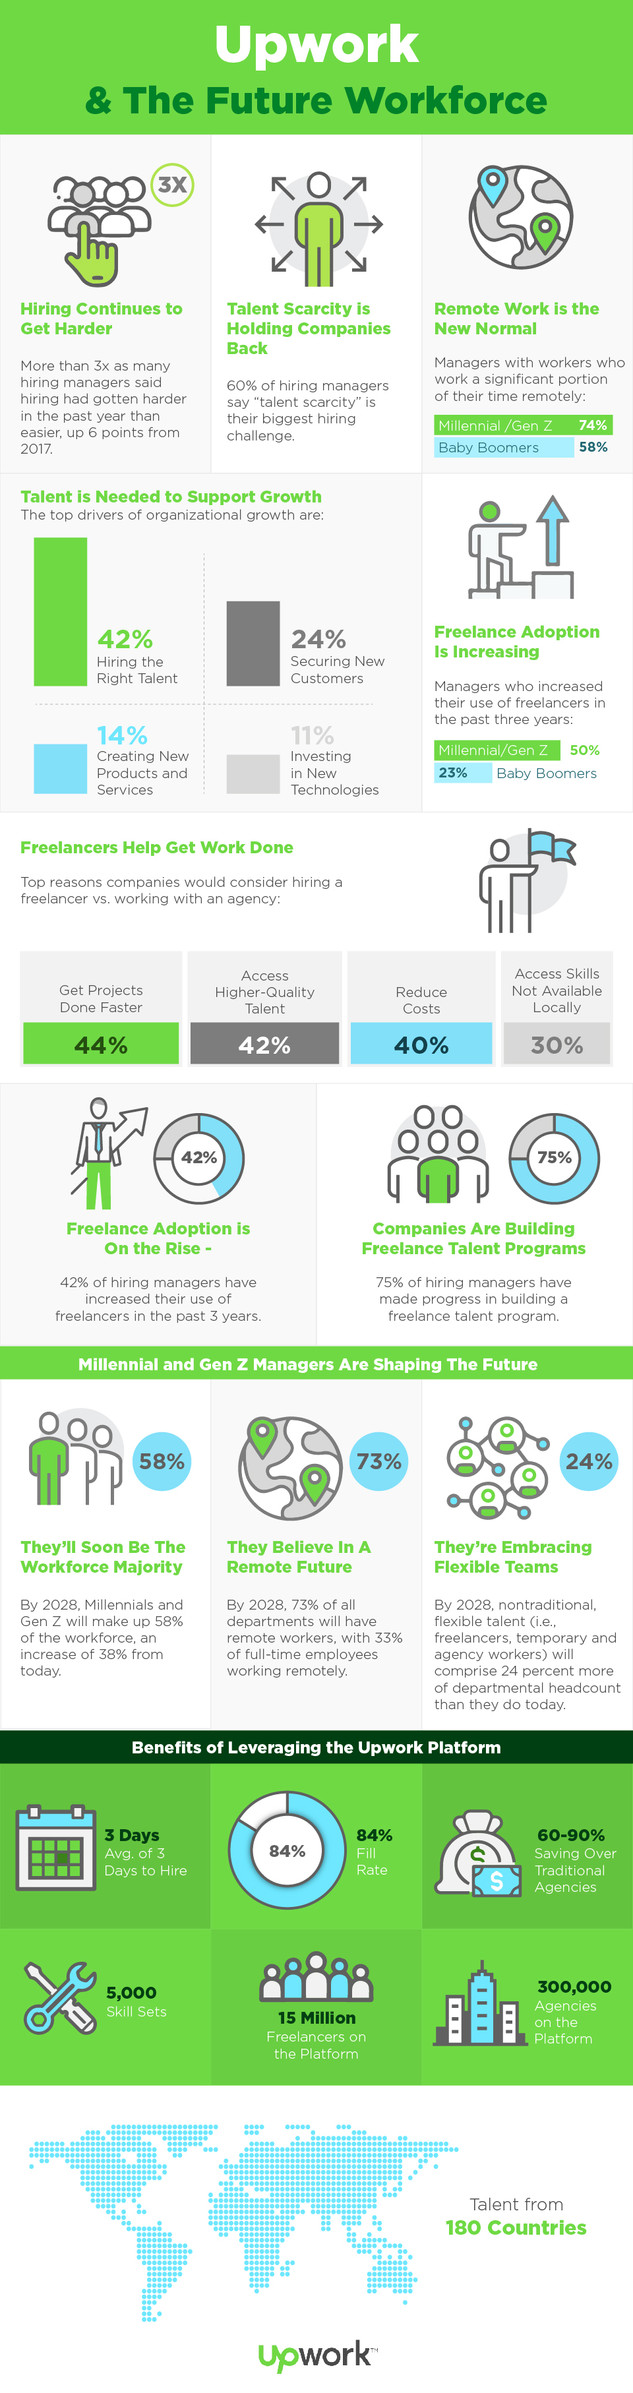 Upwork & The Future Workforce